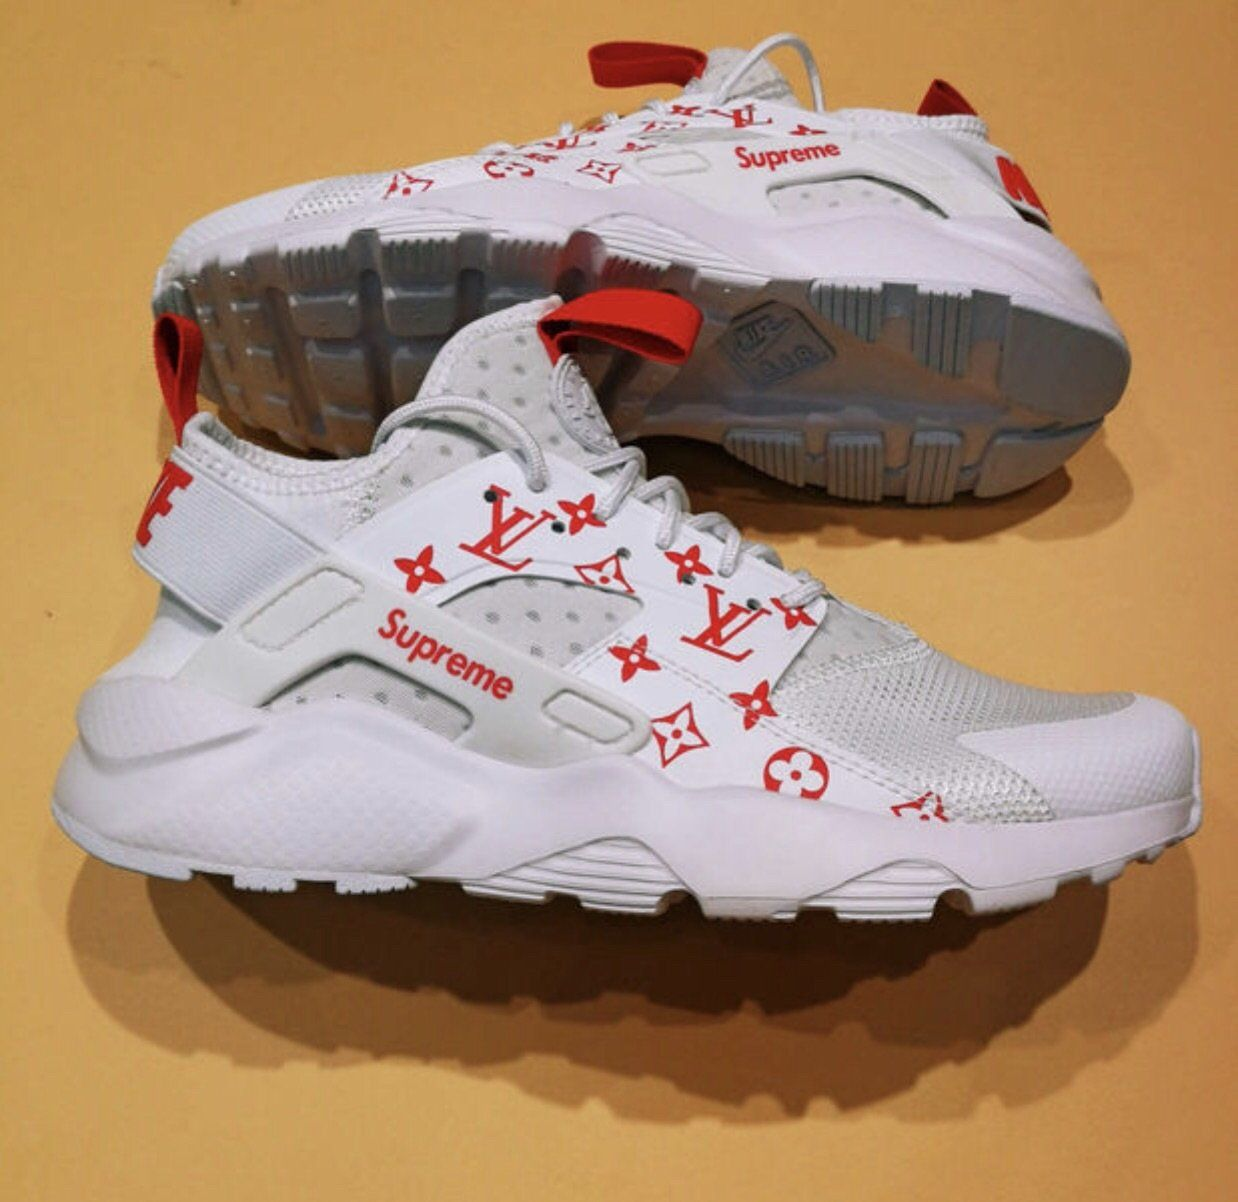 Louis Vuitton x Supreme Huaraches | MONEYPRINCESS in 2019 ...